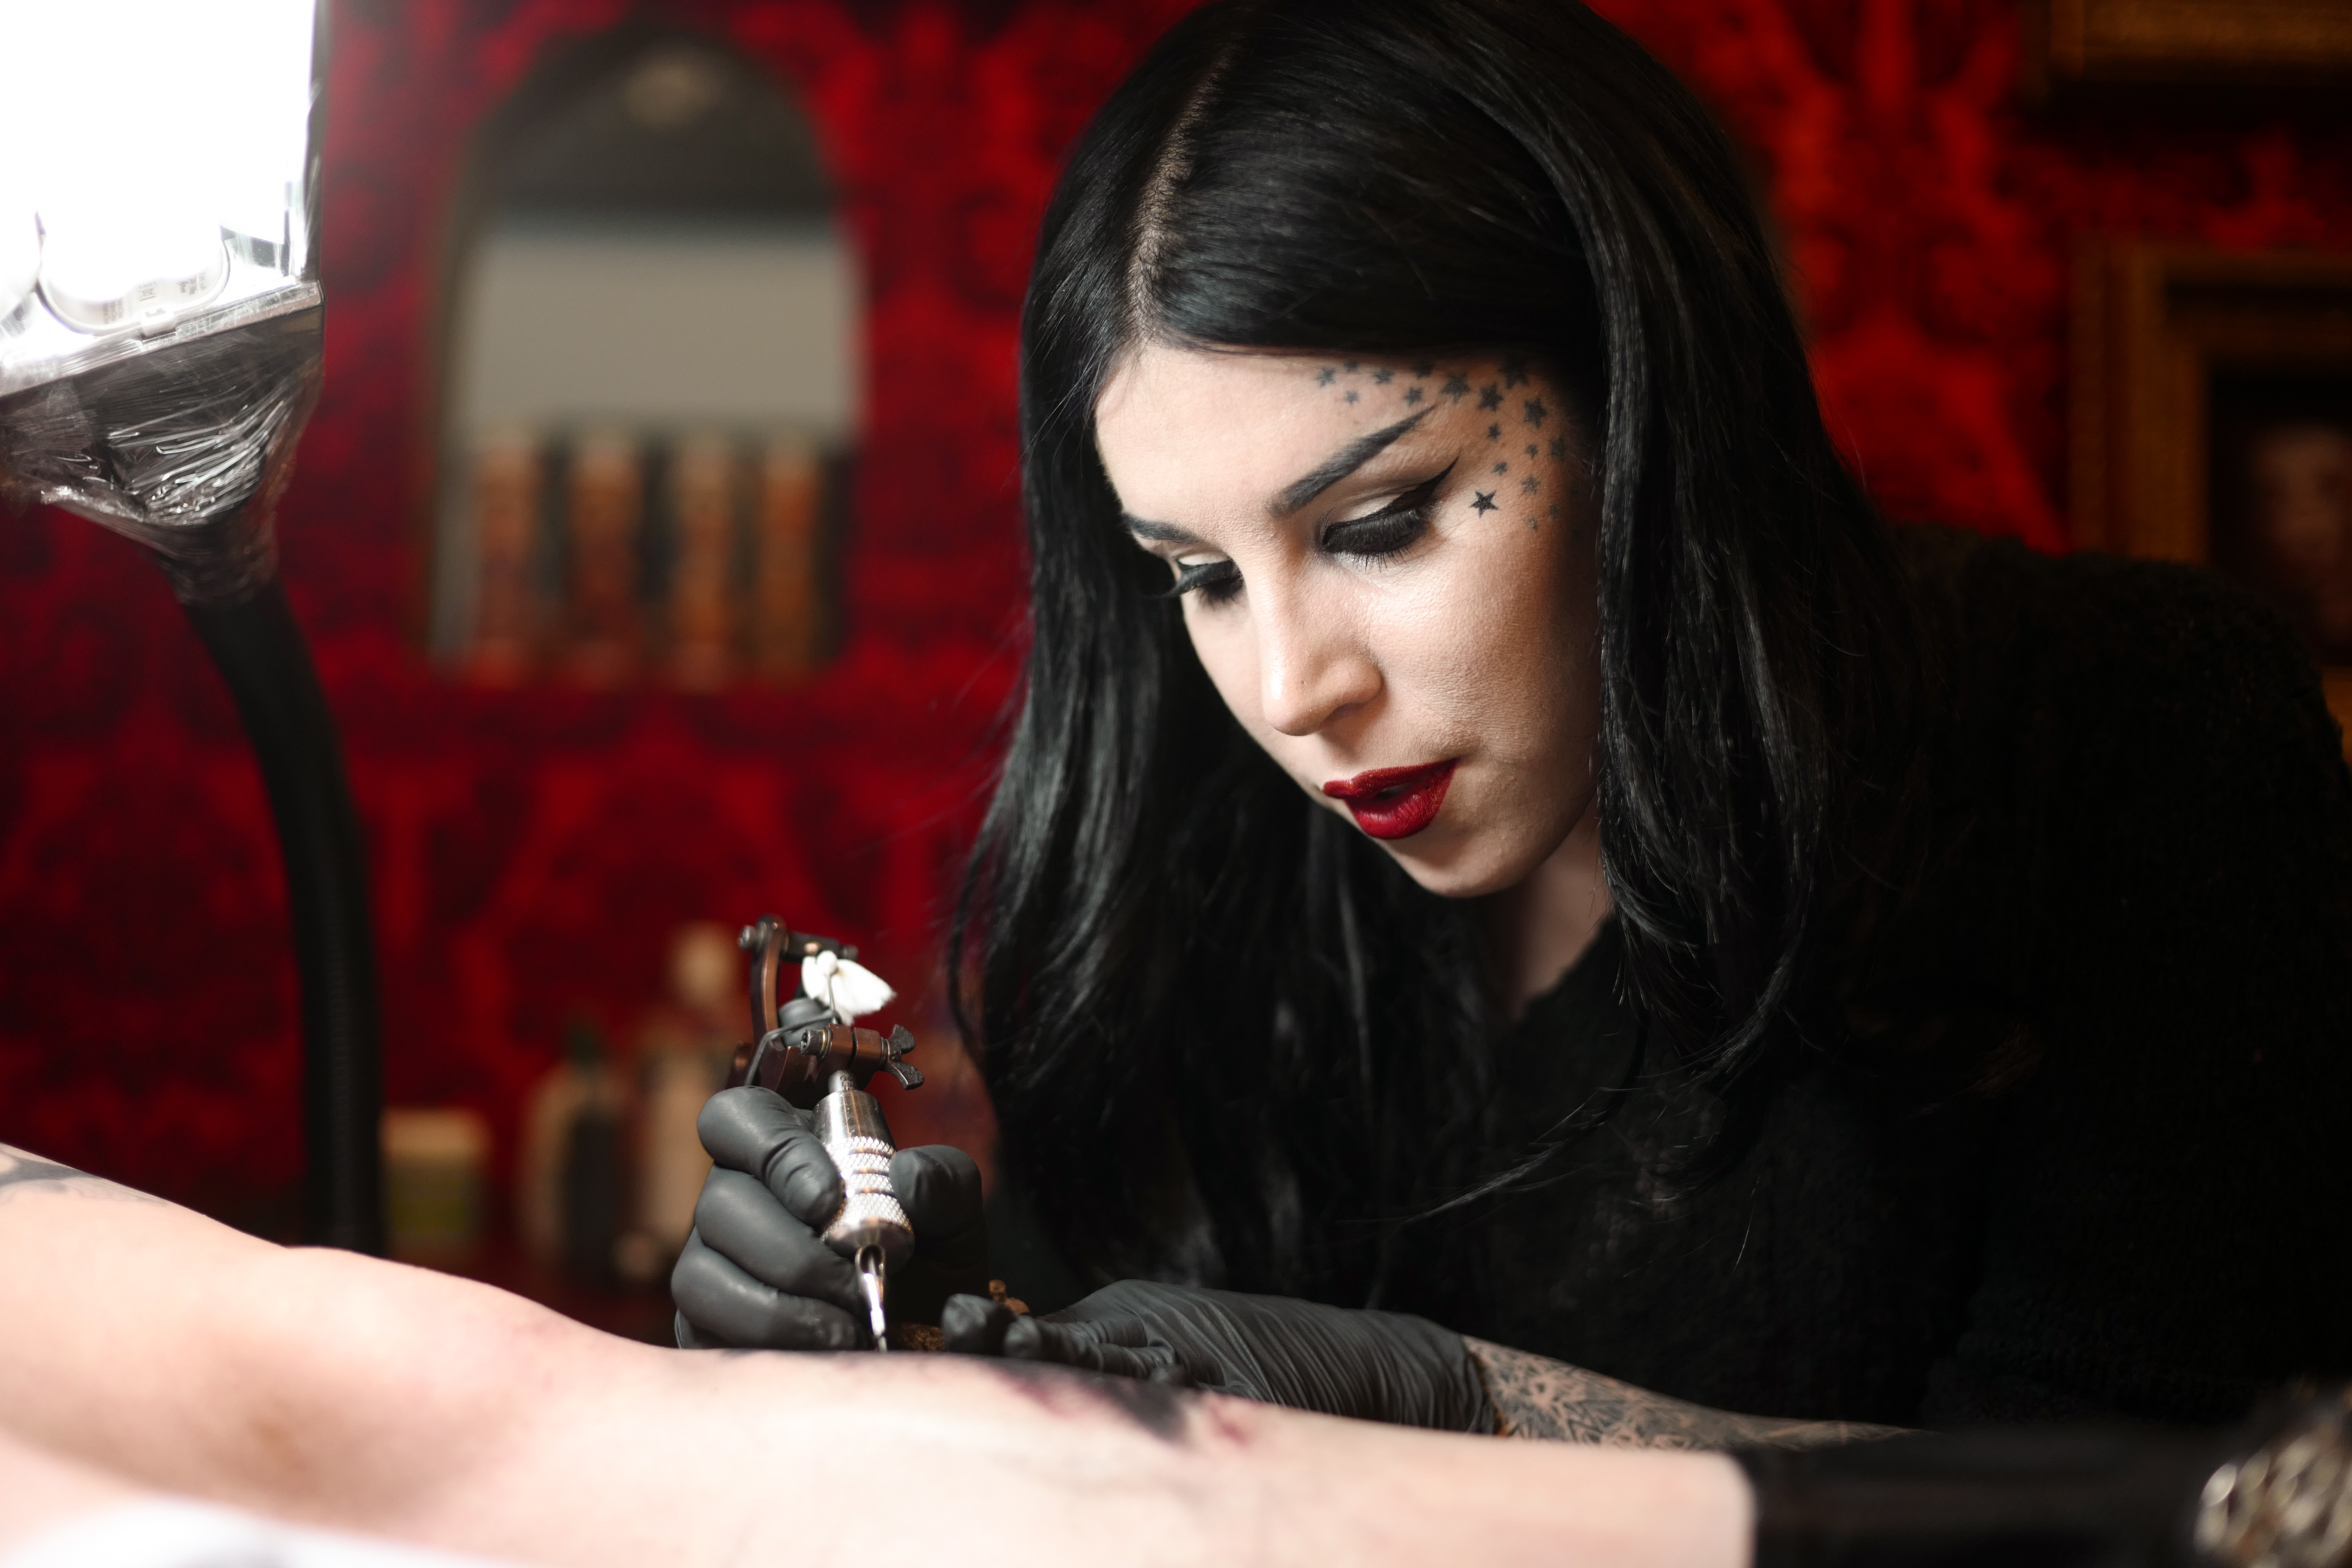 Kat Von D tattoos a person's arm at her West Hollywood tattoo studio.